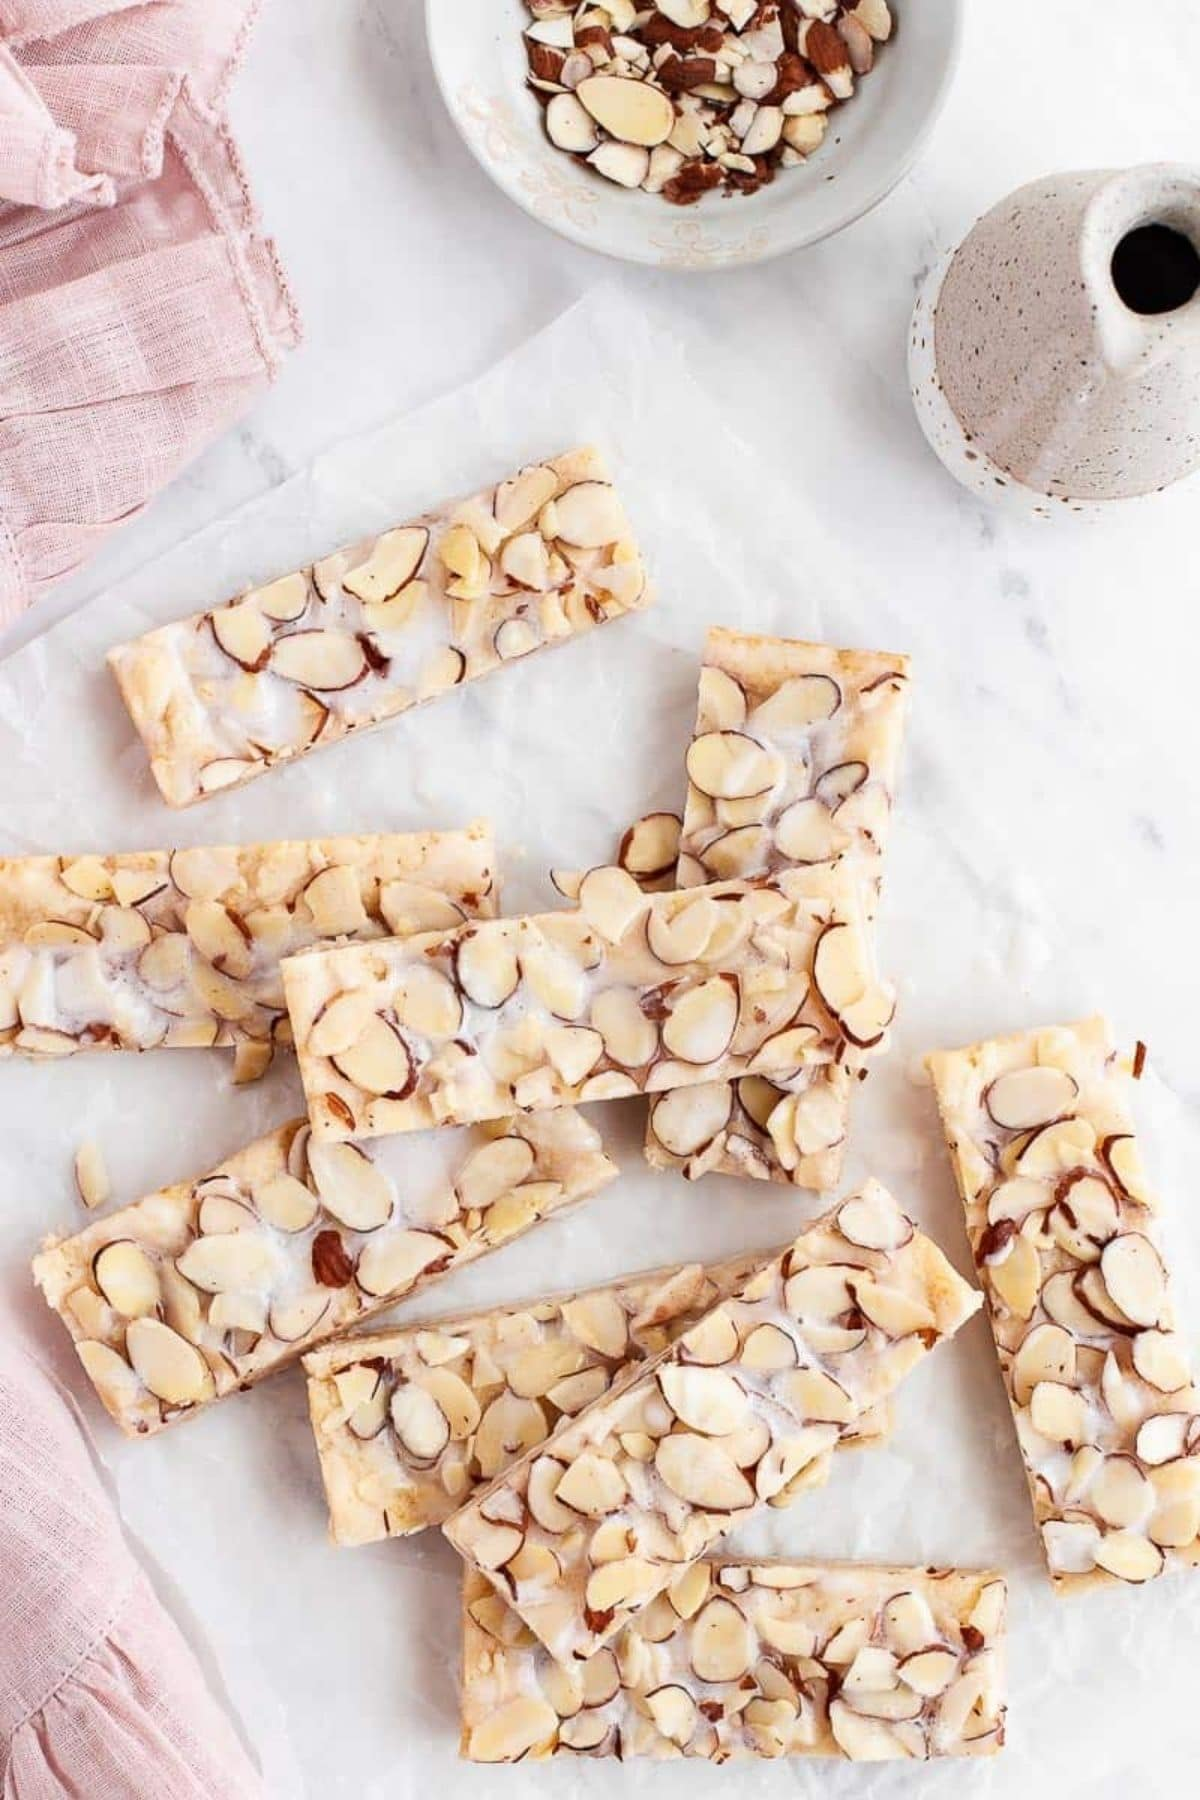 Almond bars cut into rectangles stacked on marble